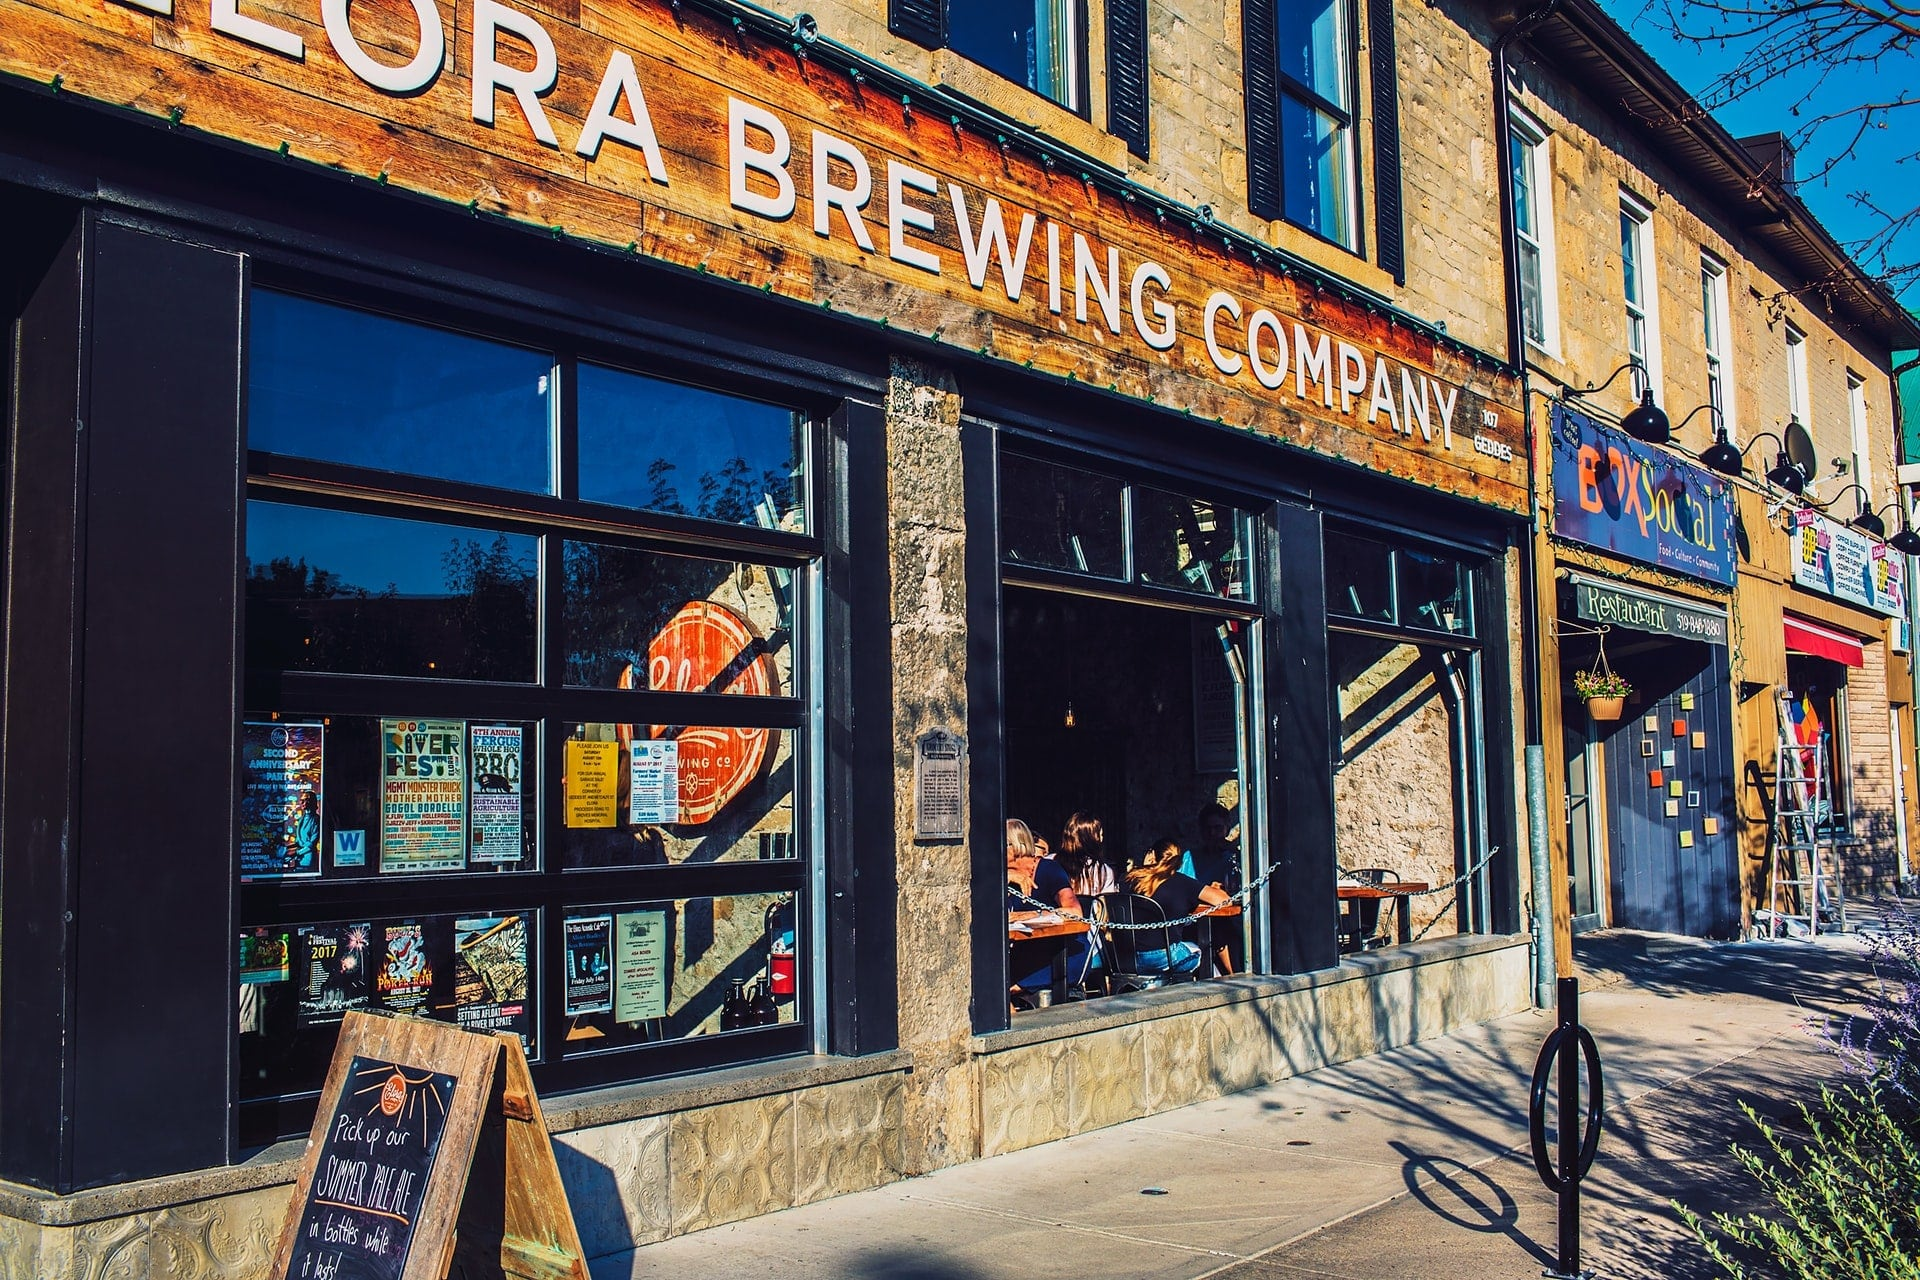 Elora Brewing Company Bar and Eatery